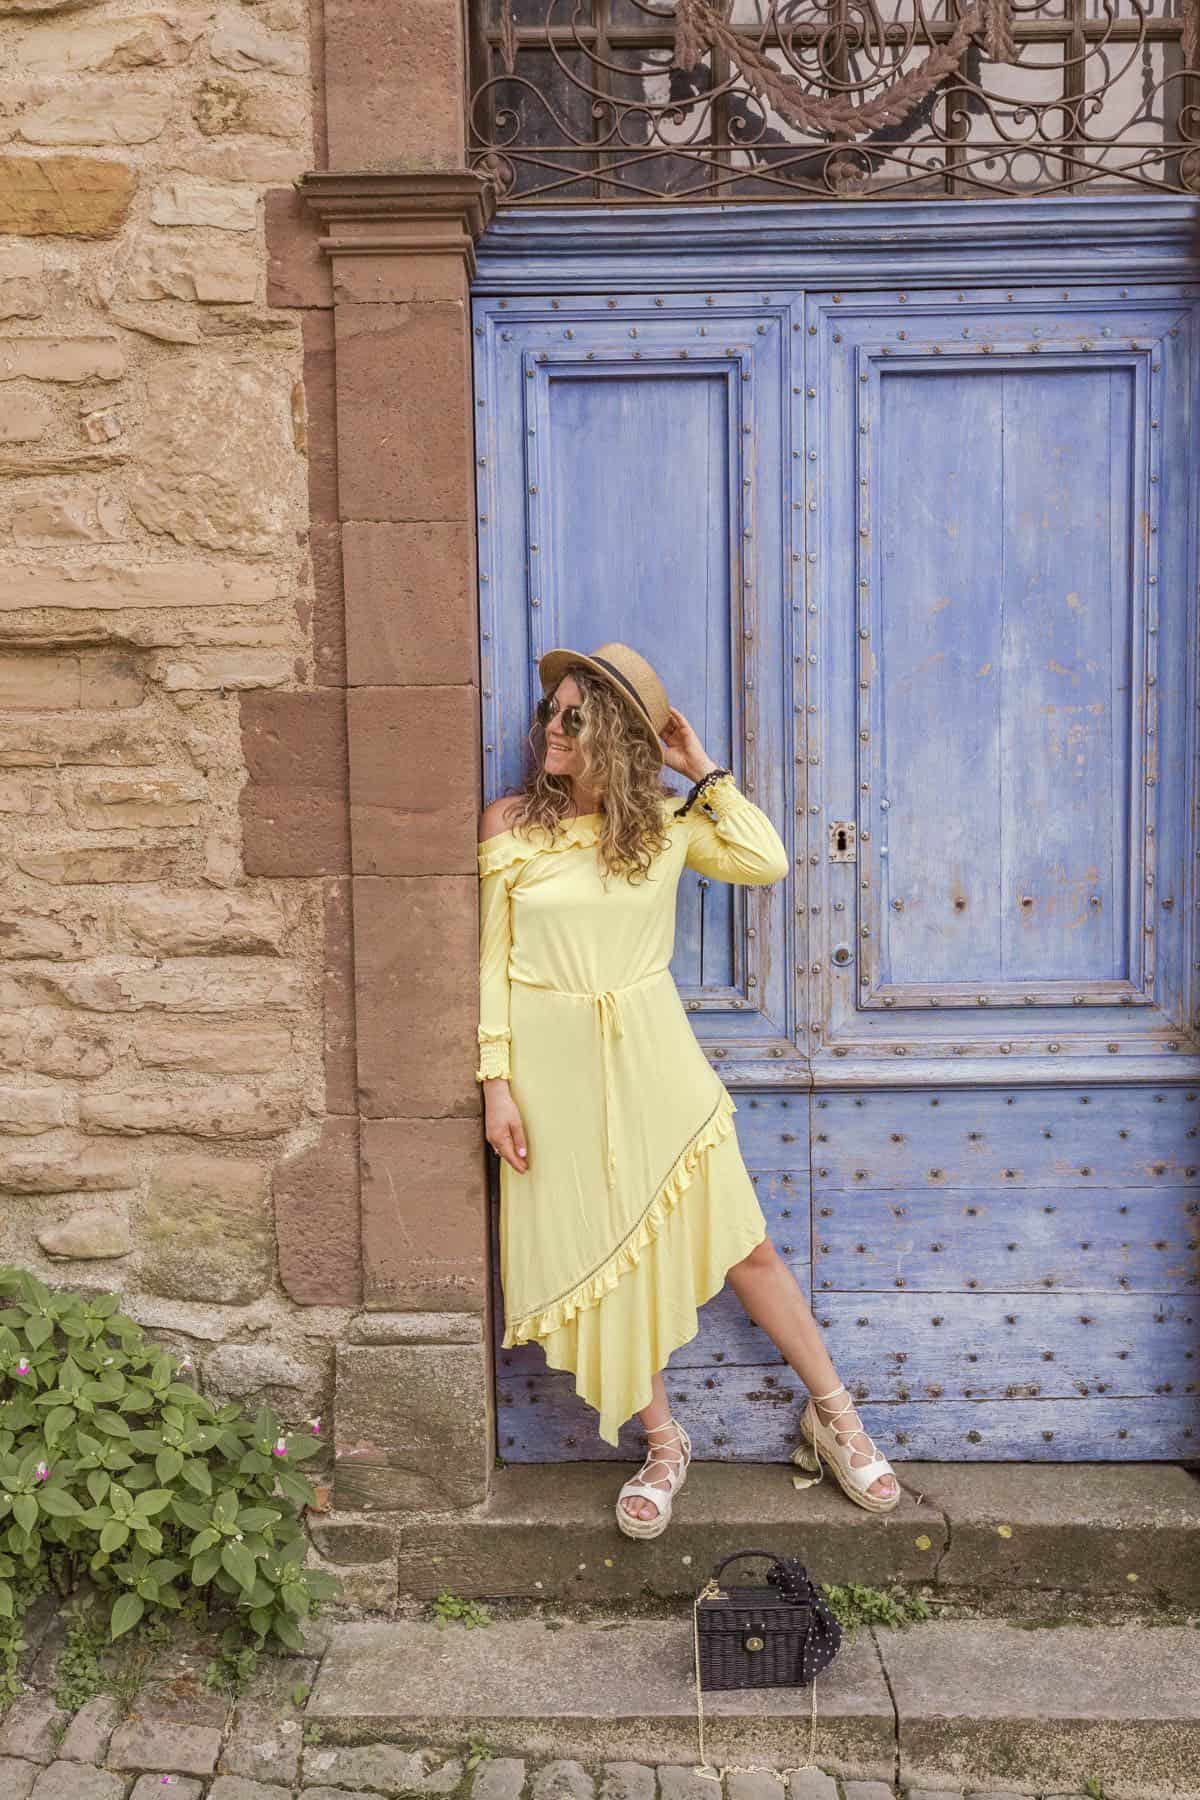 girl in yellow dress posed in front of an old blue door